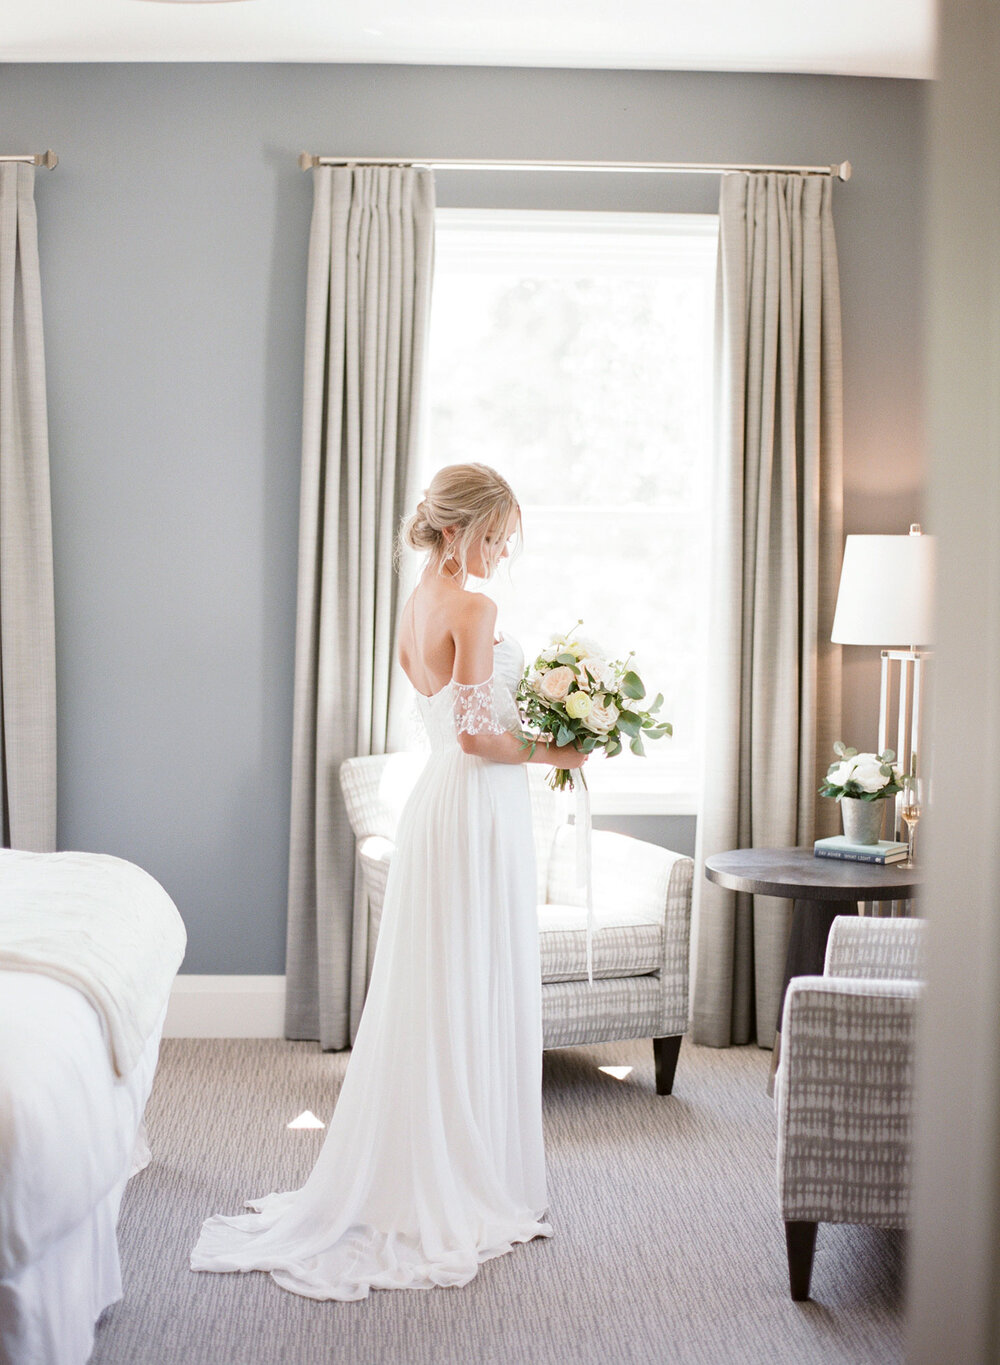 the-gate-house-niagara-on-the-lake-weddings-vineyard-bride-swish-list-photo-3.jpeg